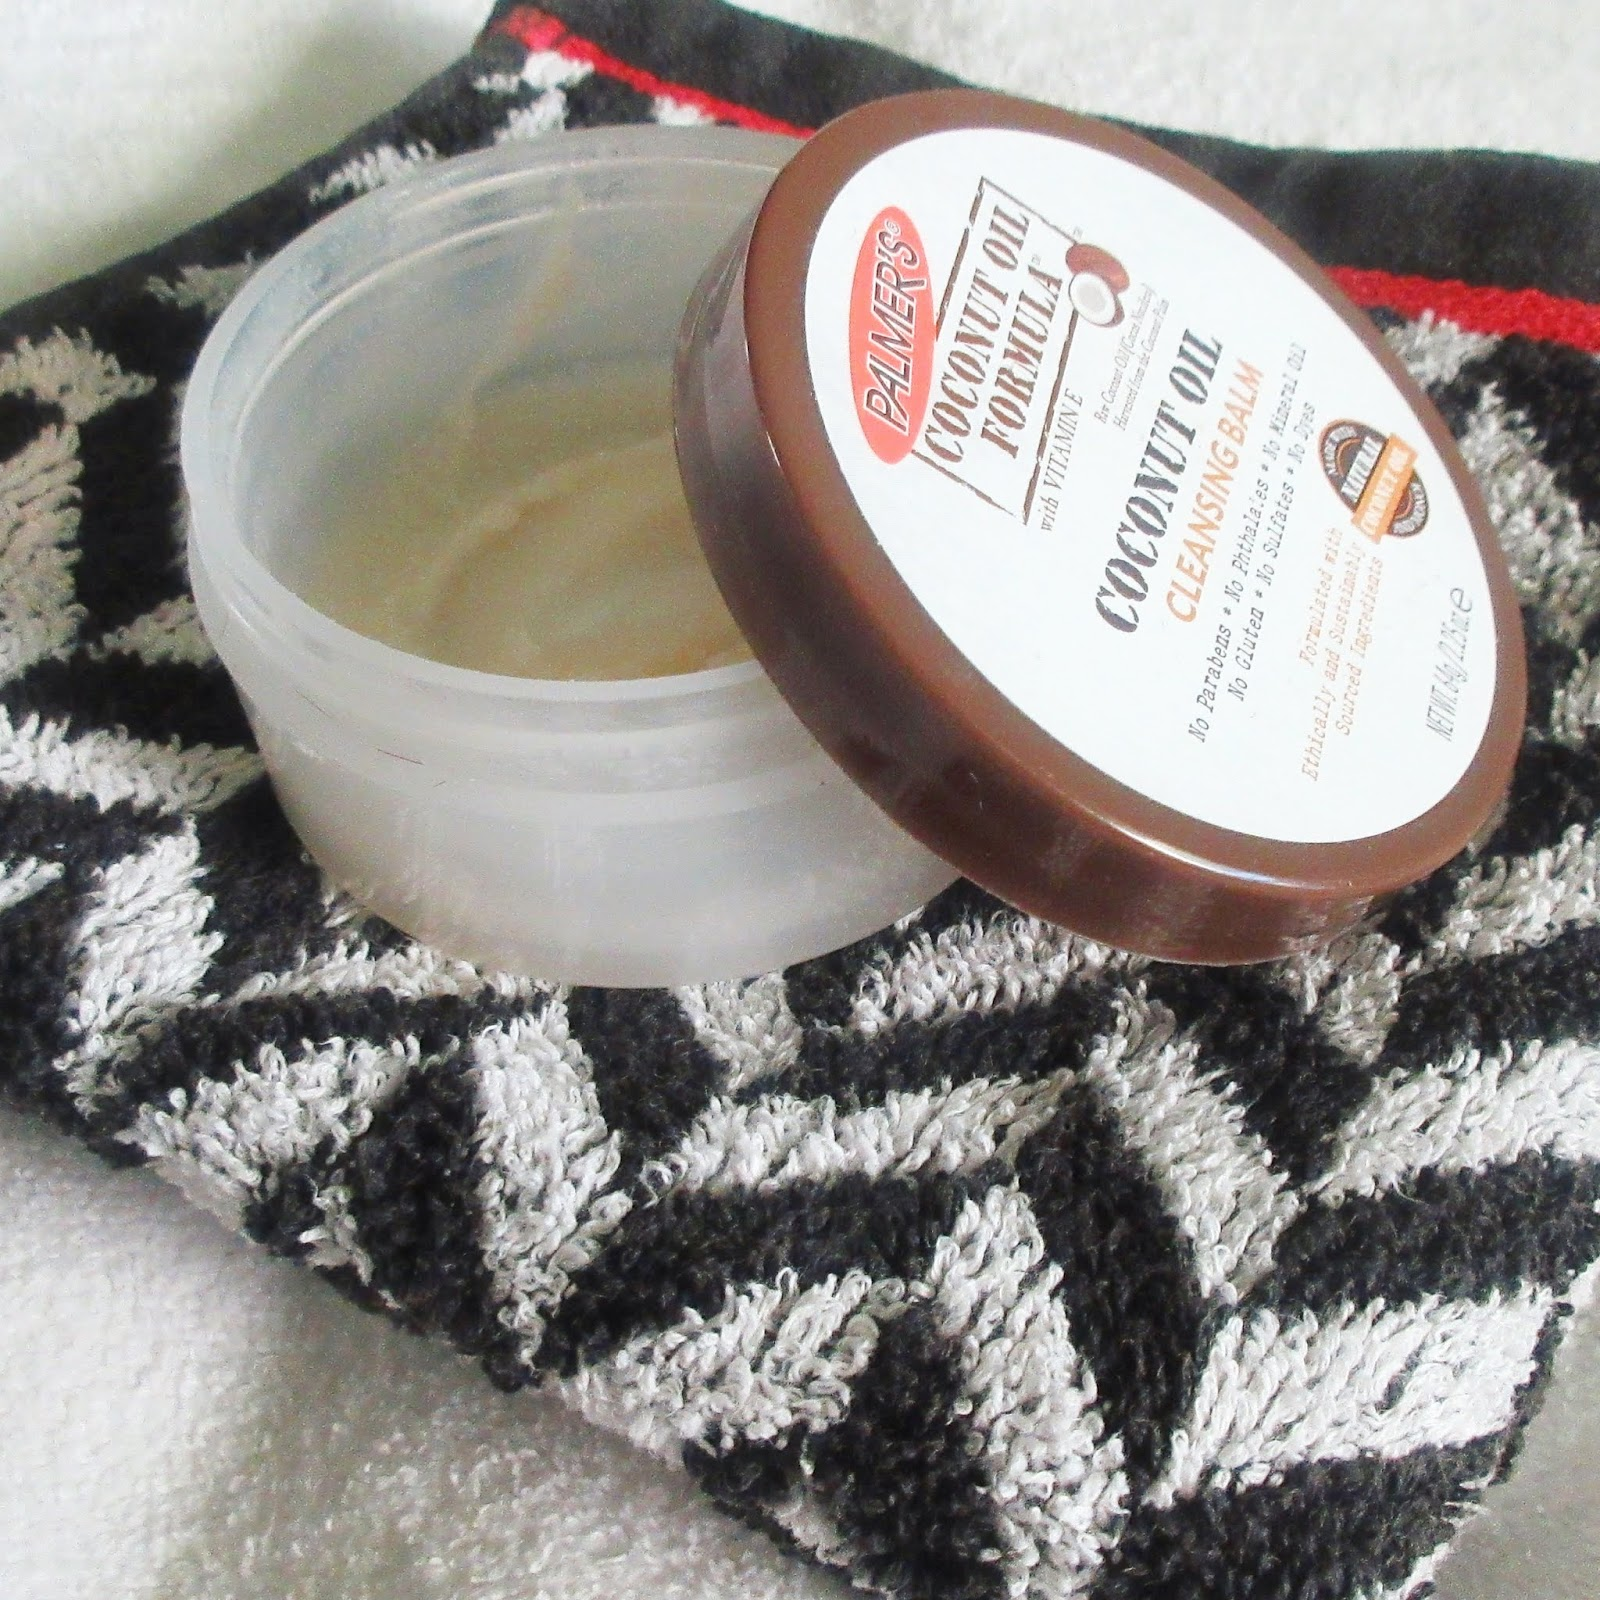 Palmer's Coconut Oil Cleansing Balm Review